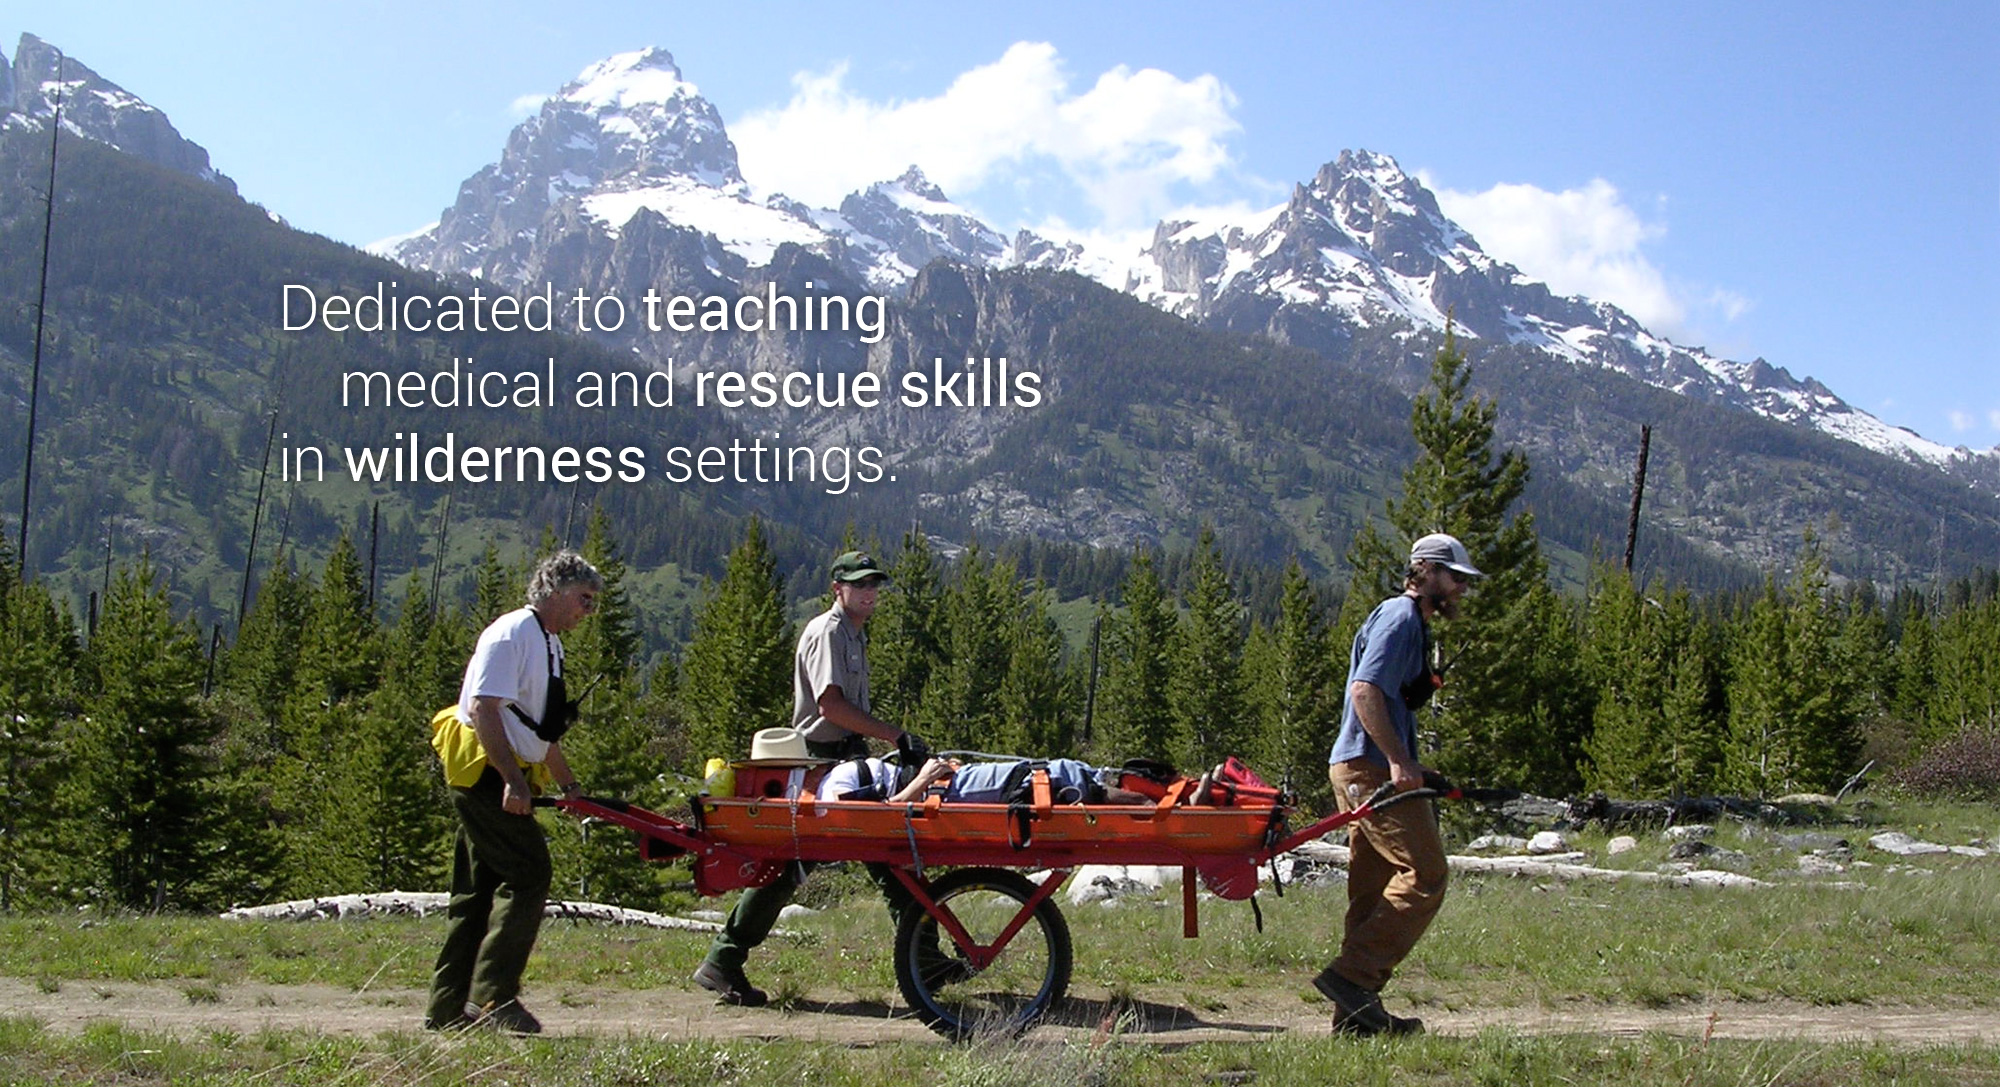 Dedicated to teaching medical and rescue skills in wilderness settings.